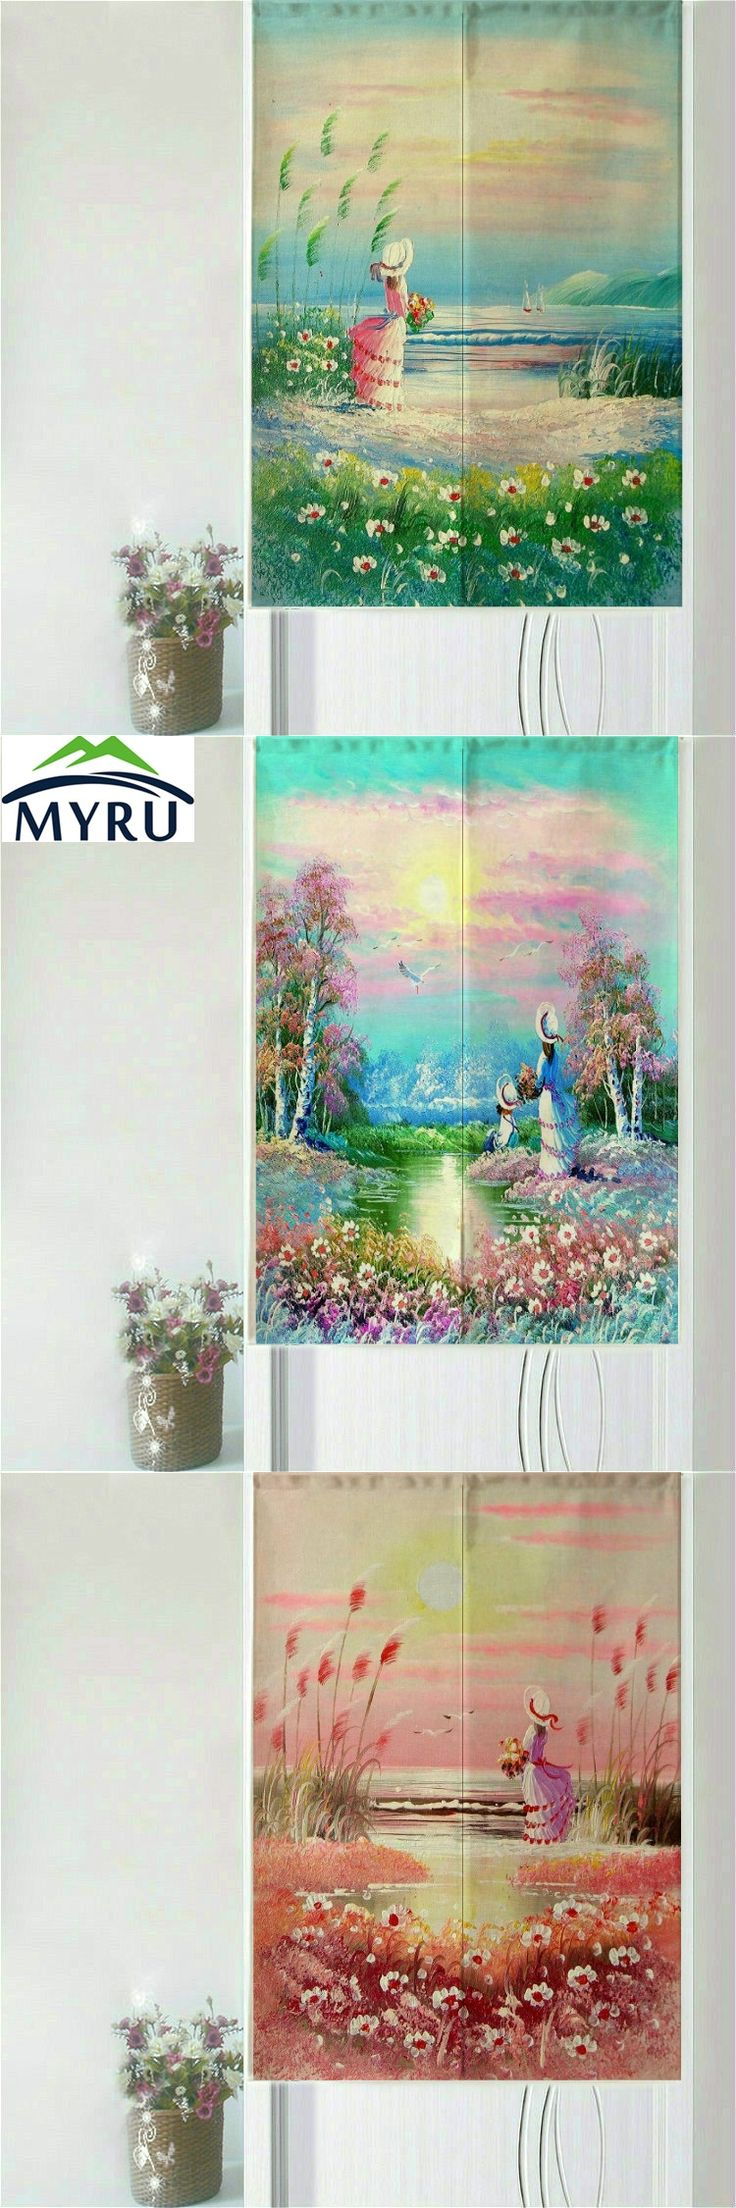 MYRU Western Oil Painting Catcher In The Rye Series Door Curtain  Partition Type Household Geomantic Curtain 85x150cm